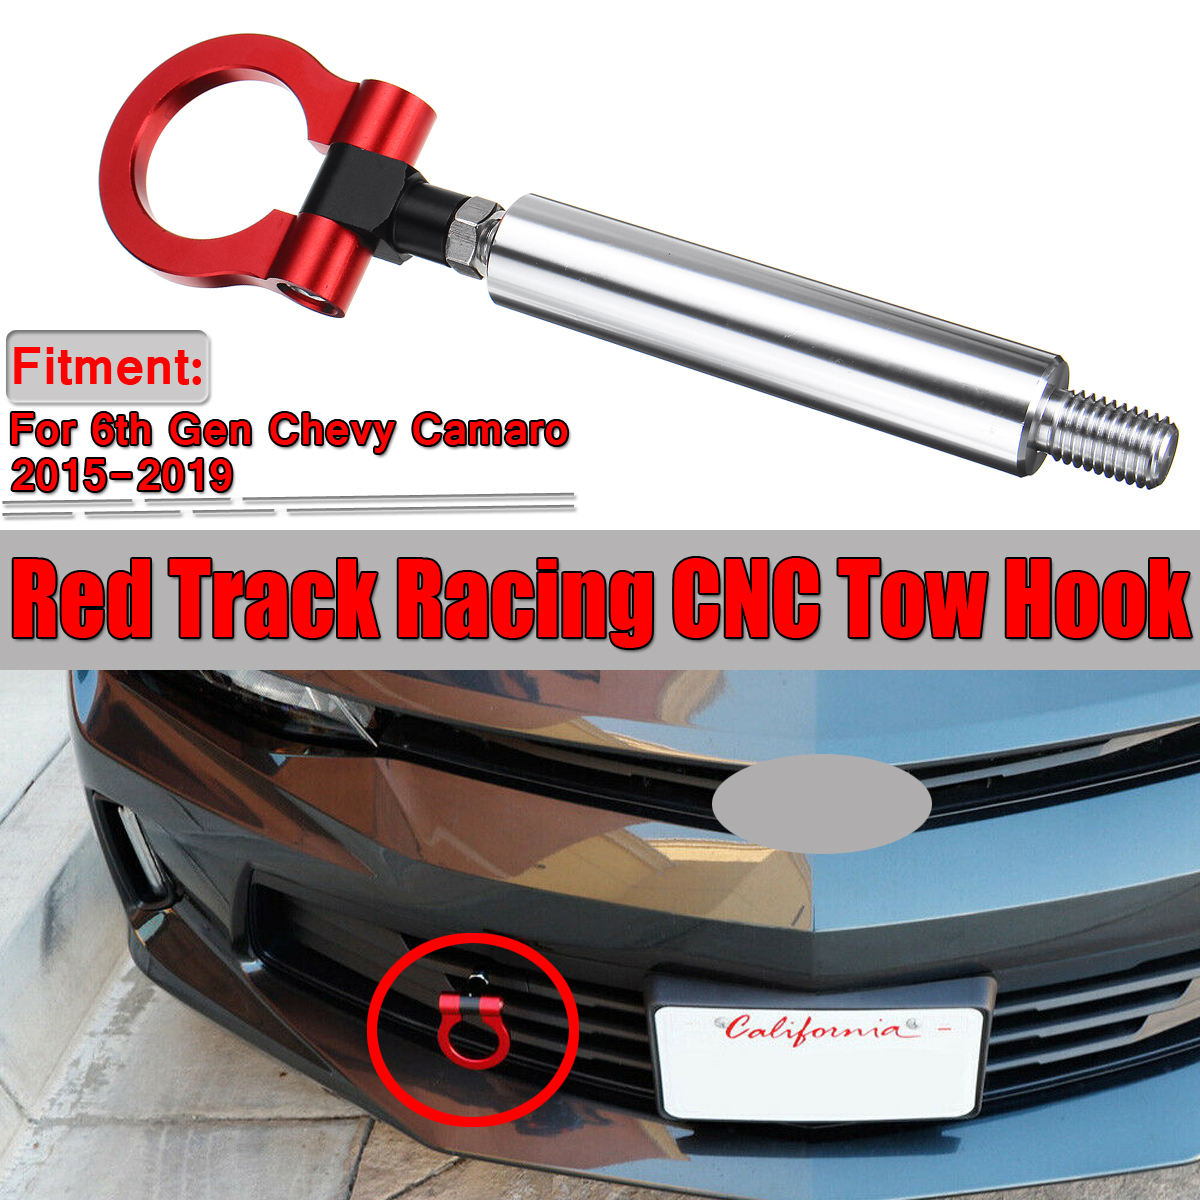 Sporty Customized Red Track Racing CNC Tow Hook for Chevrolet Camaro 6 Gen 2016+